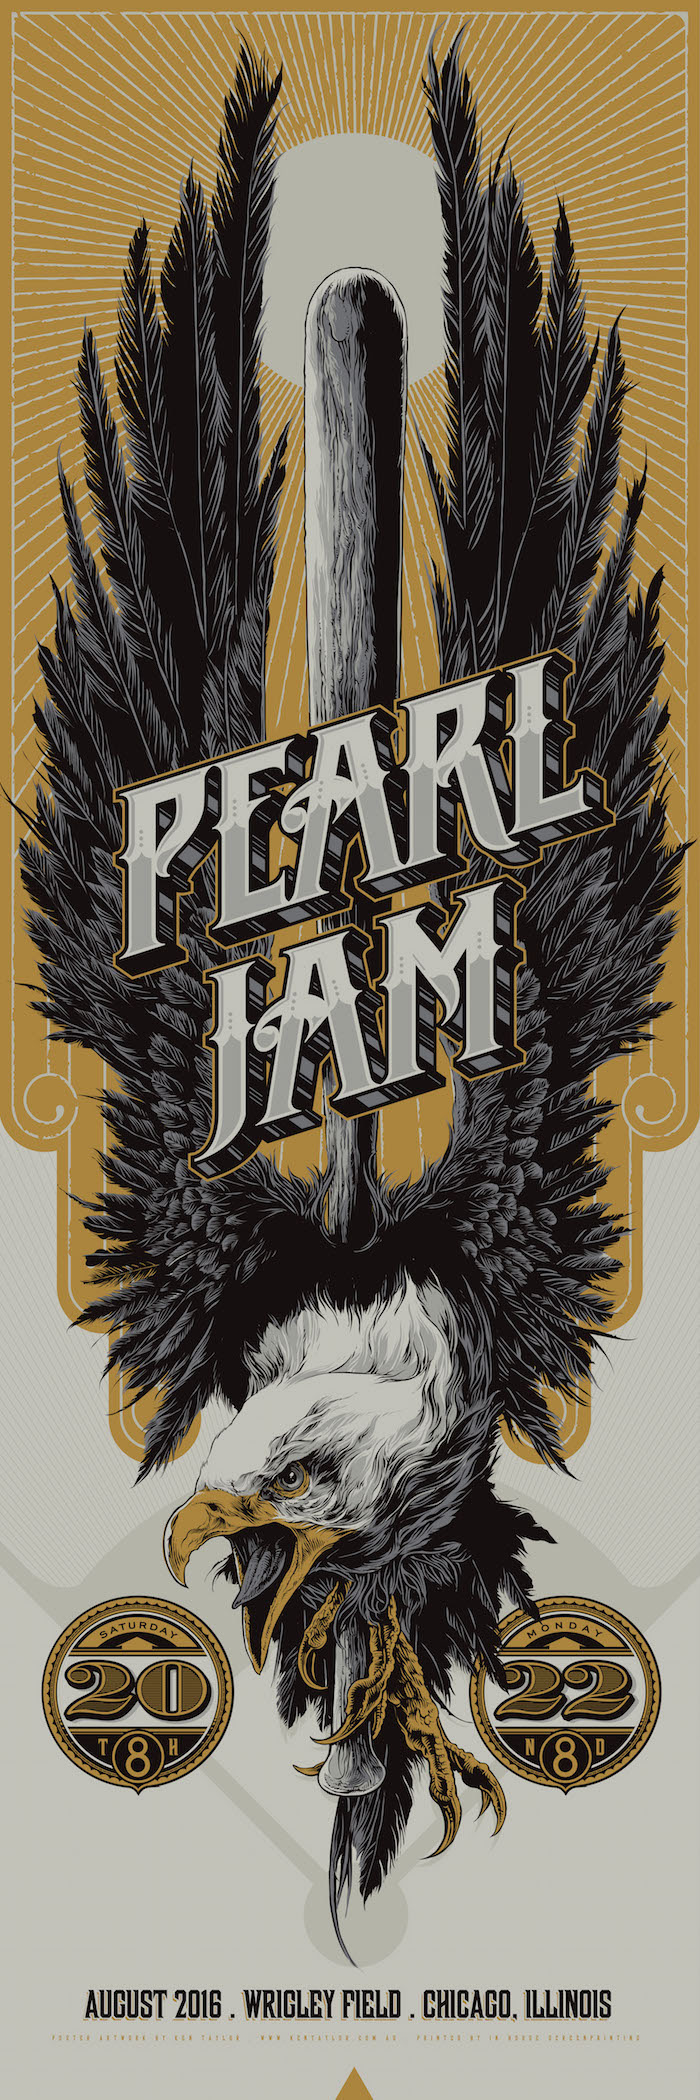 """Pearl Jam - Chicago, IL 2016"" by Ken Taylor.  12"" x 36"" Screenprint.  AP edition of 300.  $50"